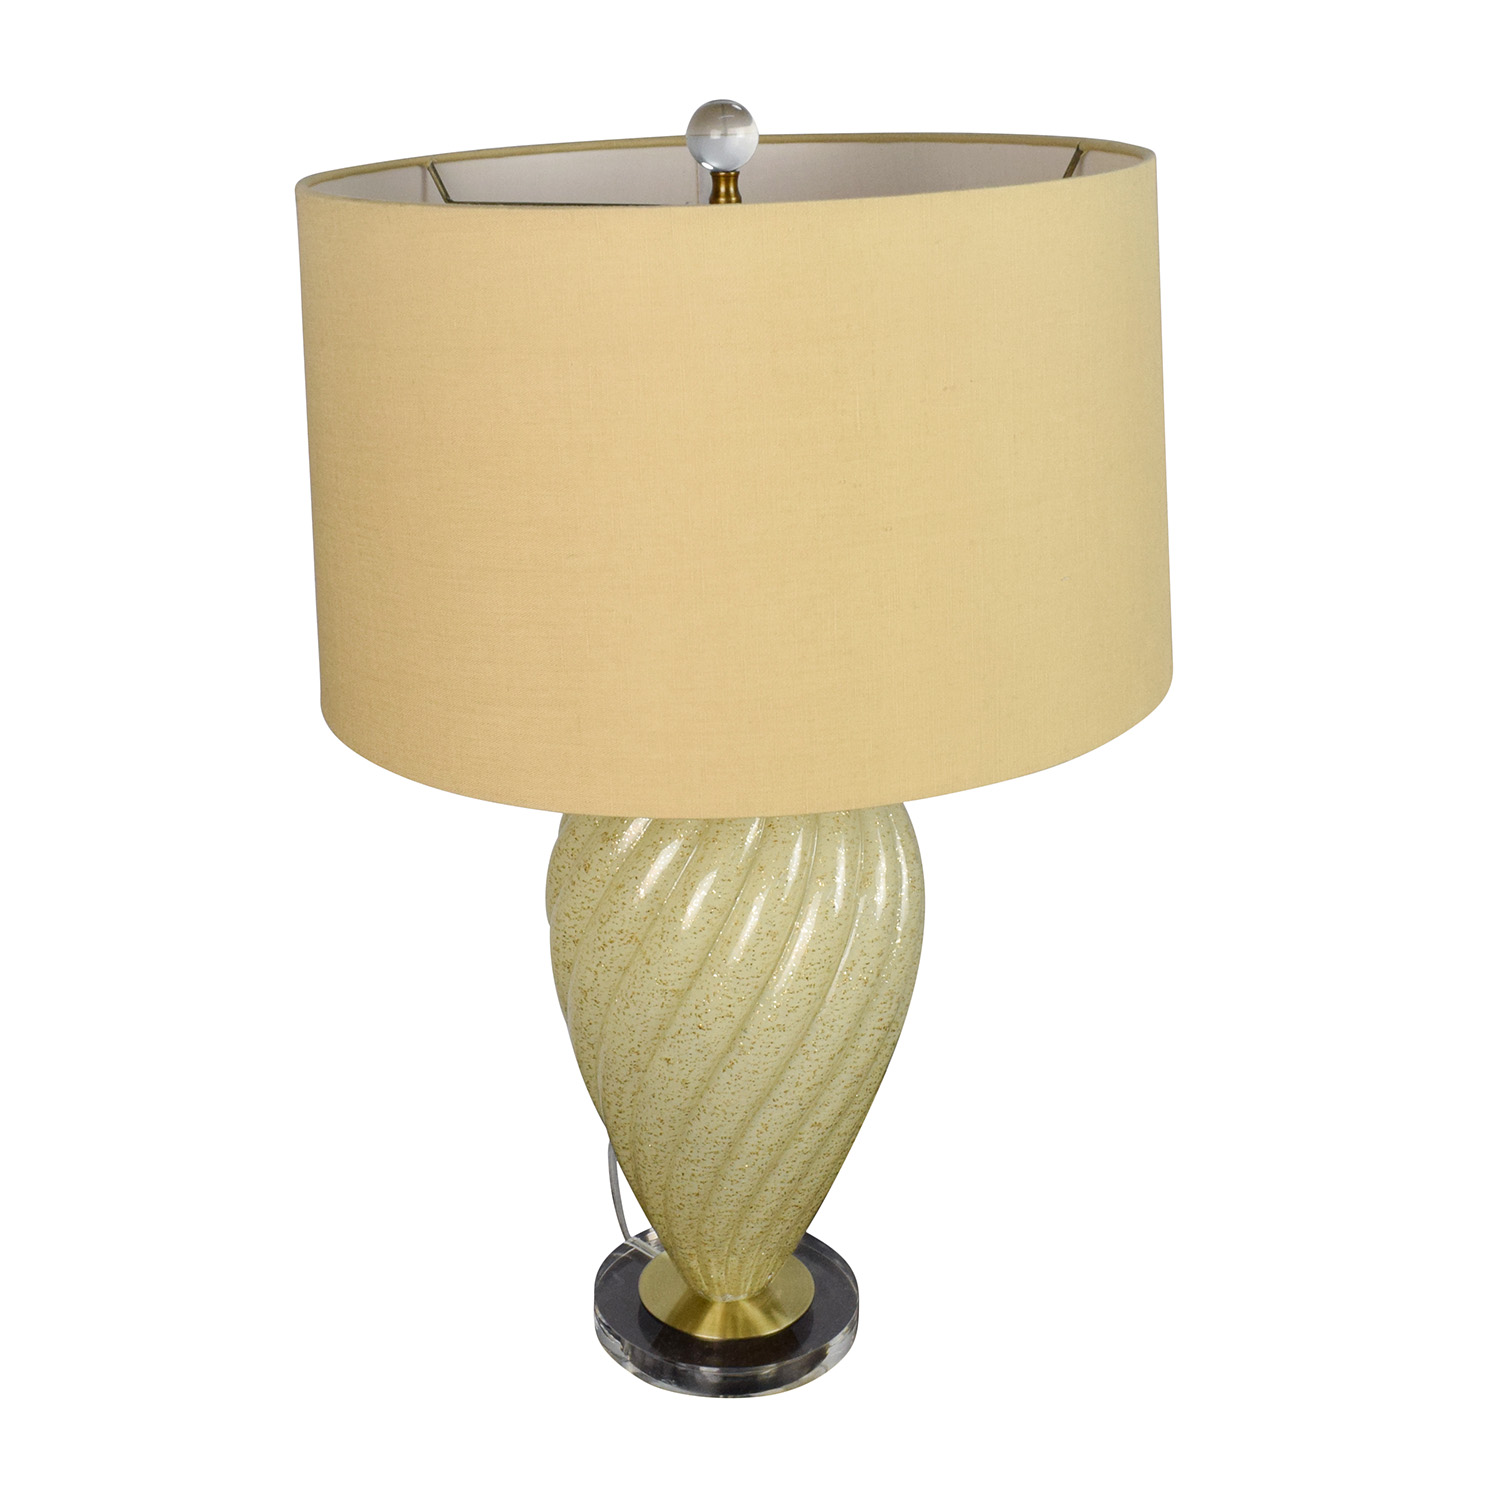 Beige Ceramic Base Lamp with Beige Shade